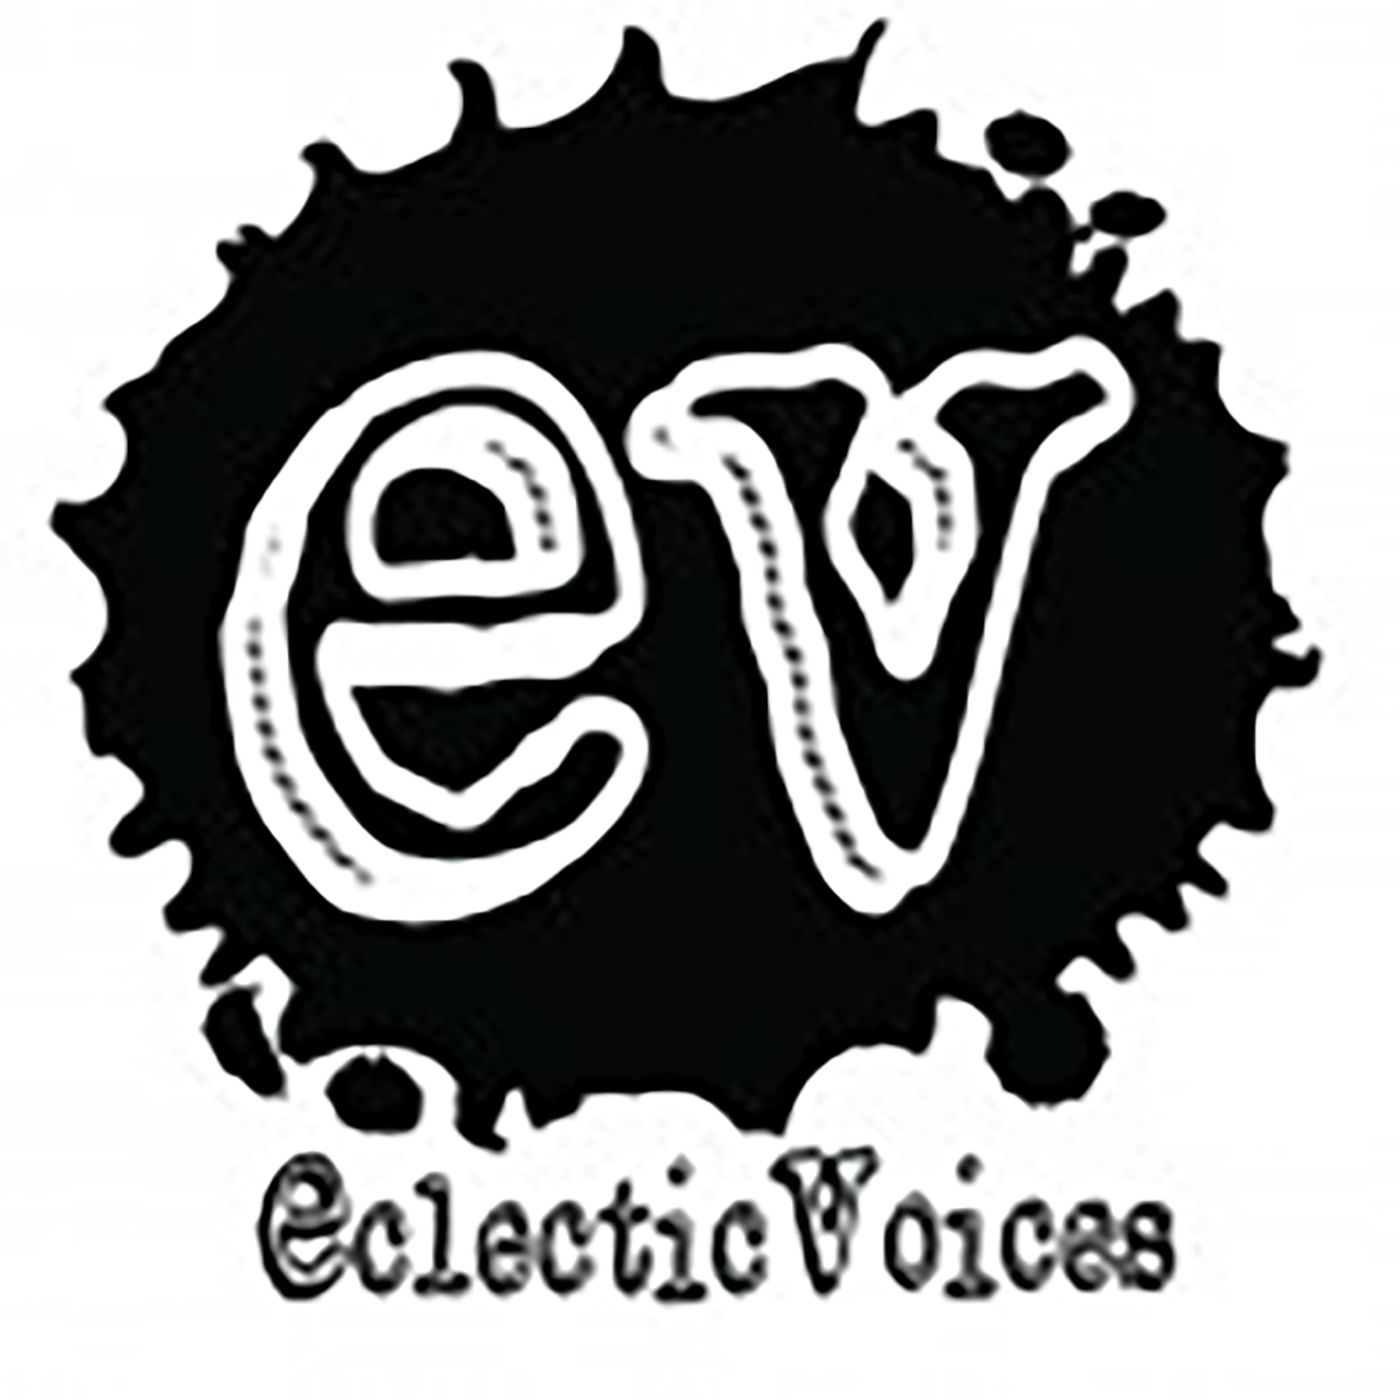 Eclectic Voices Literary Journal logo